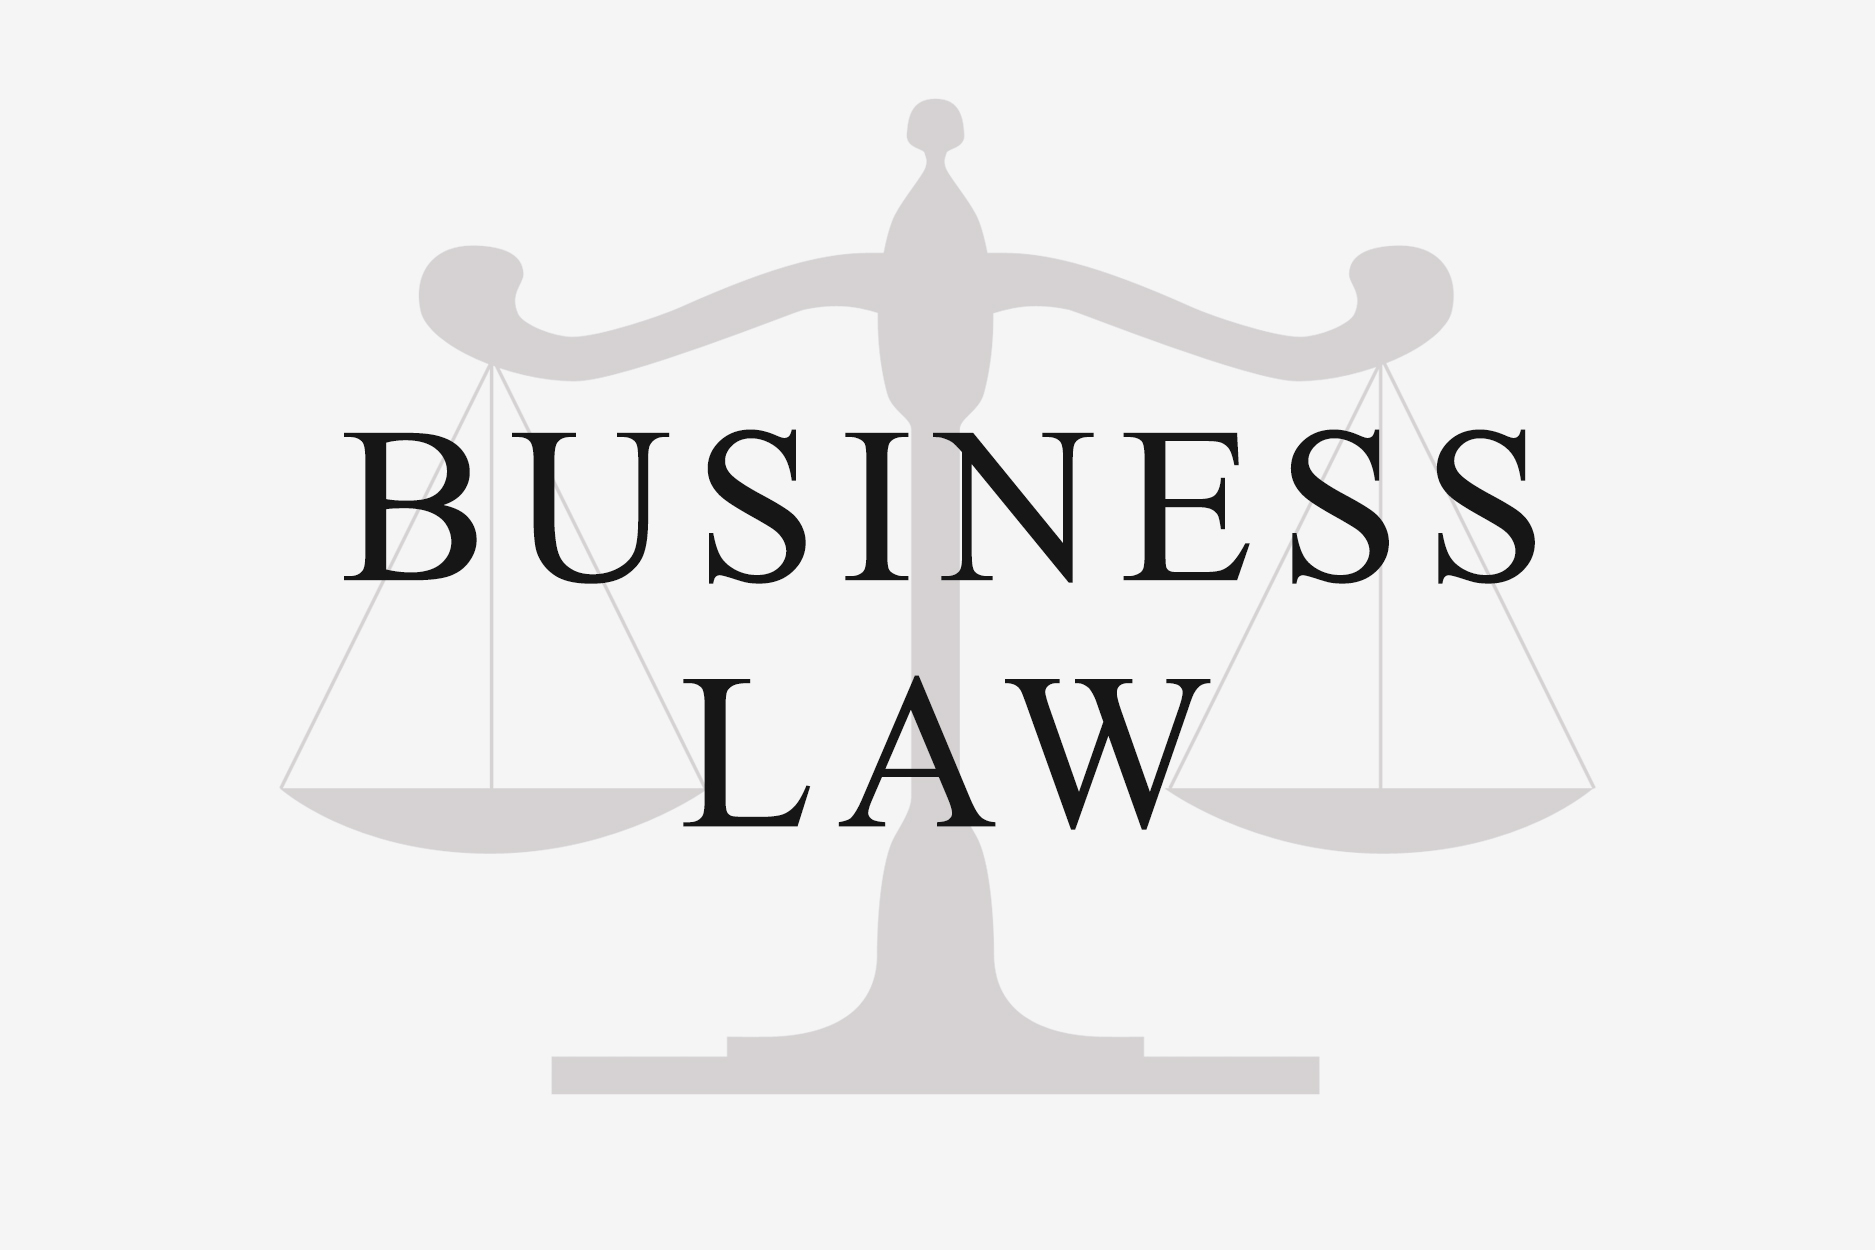 Starting a Business? Make Sure You Know the Law